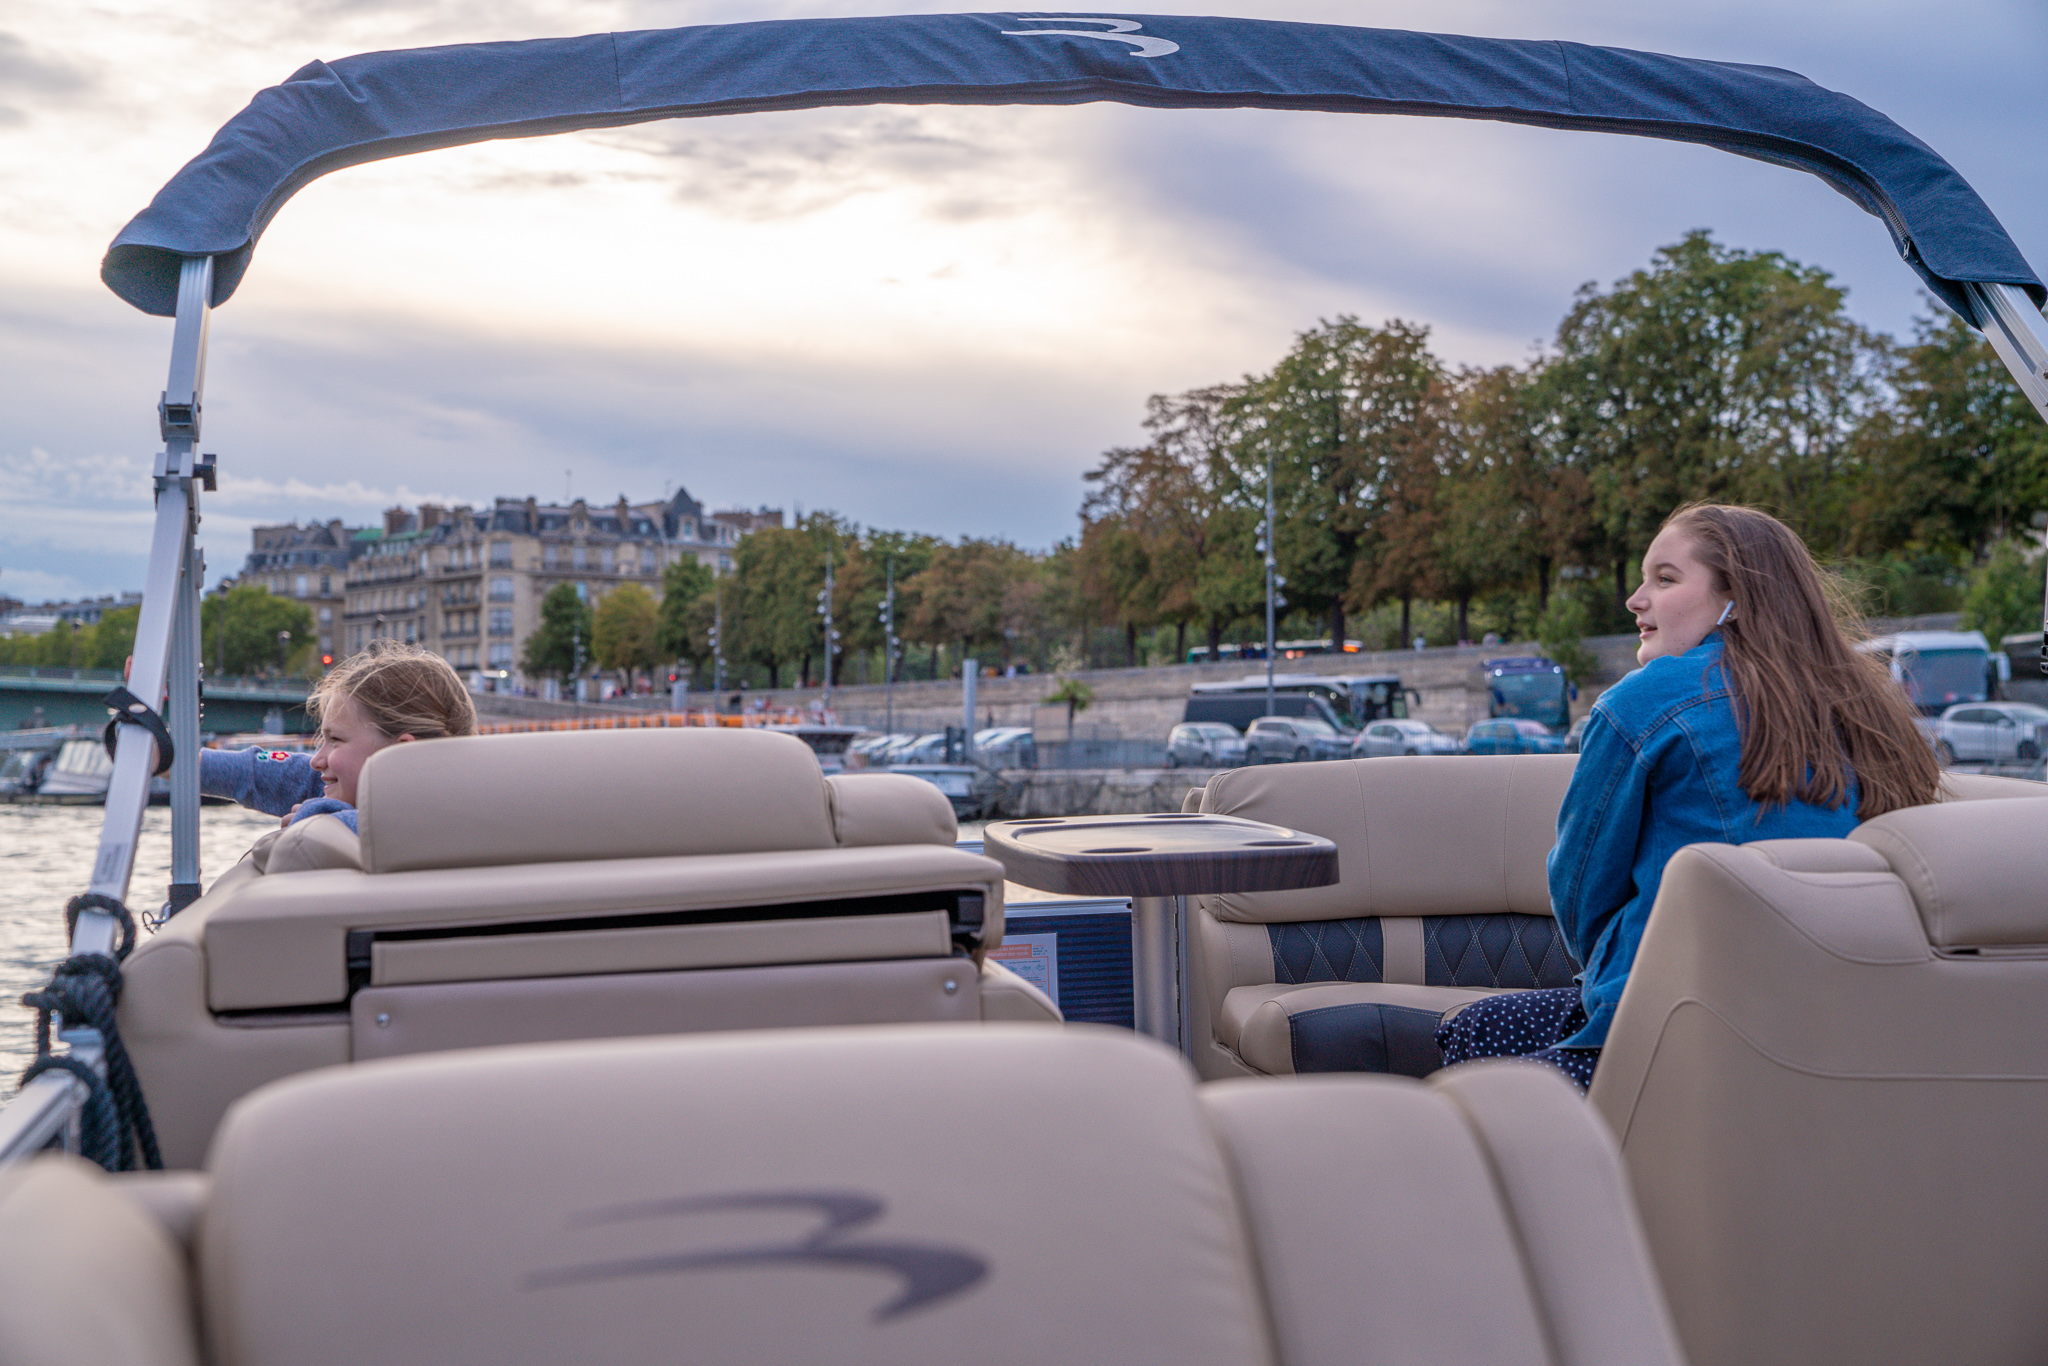 Two girls sitting in a private boat on the Seine river in Paris, France